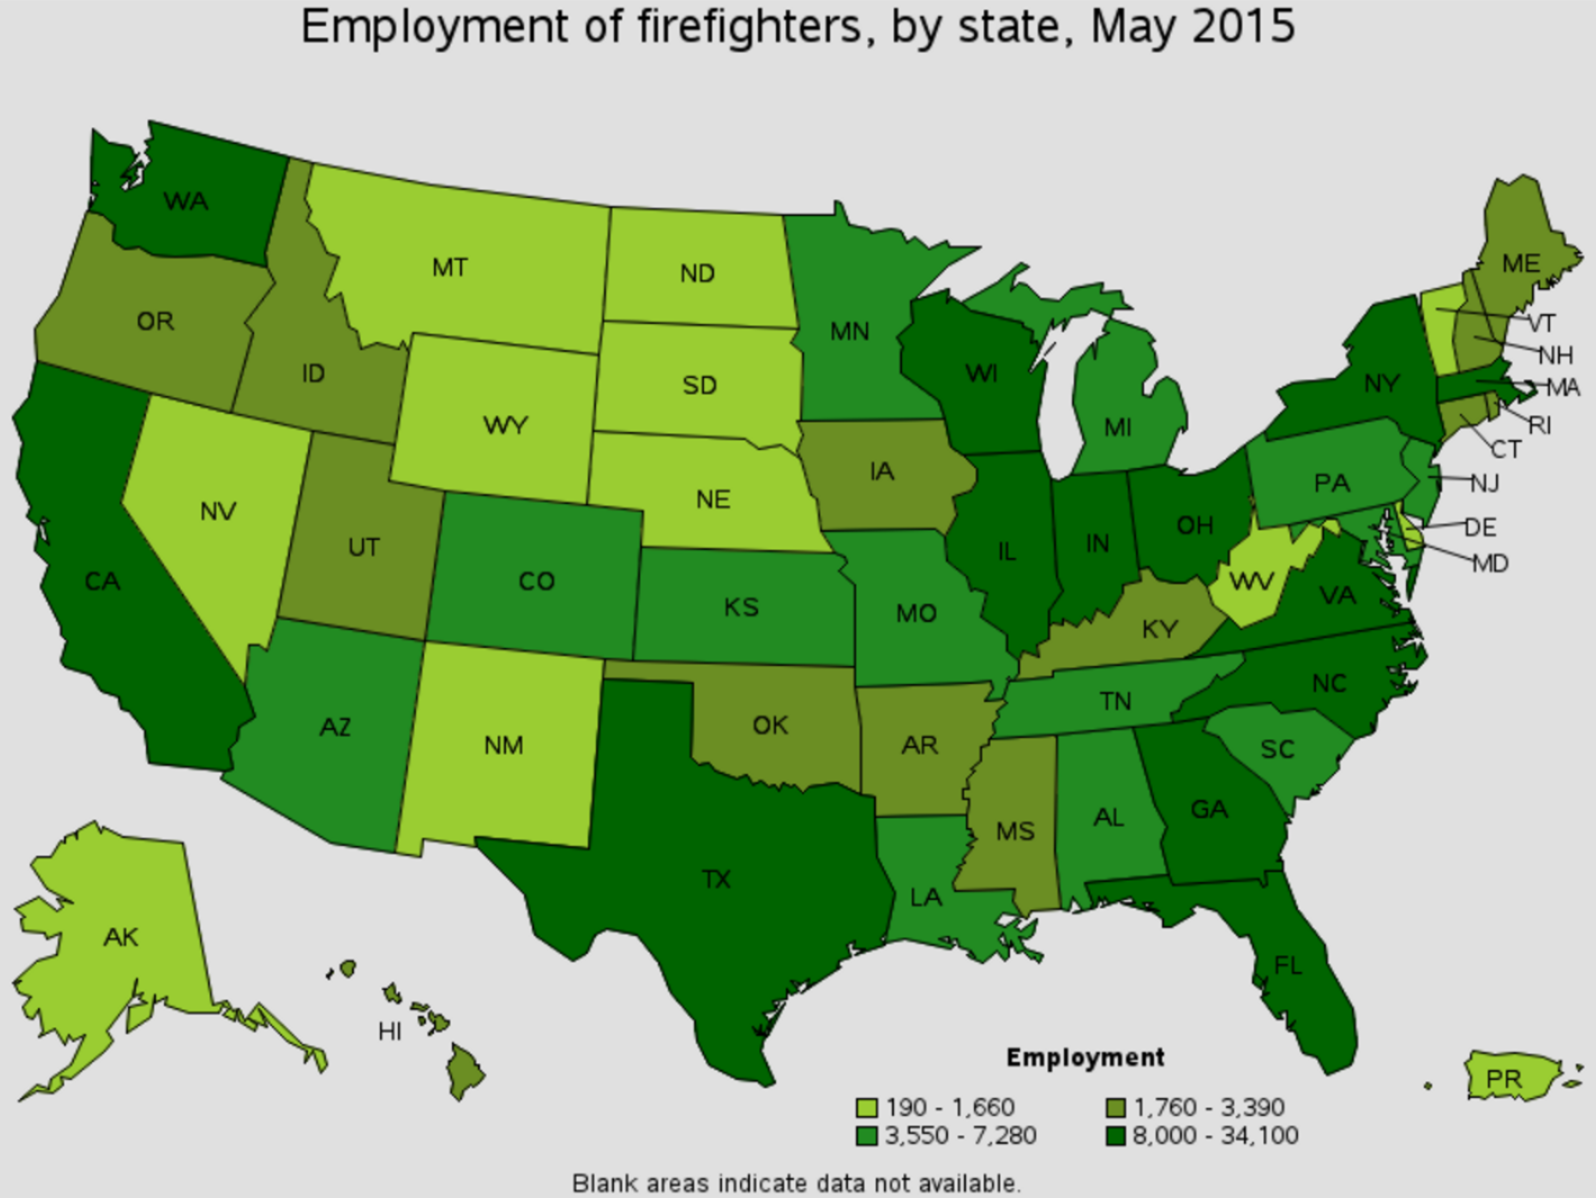 firefighter job outlook by state Macon Georgia